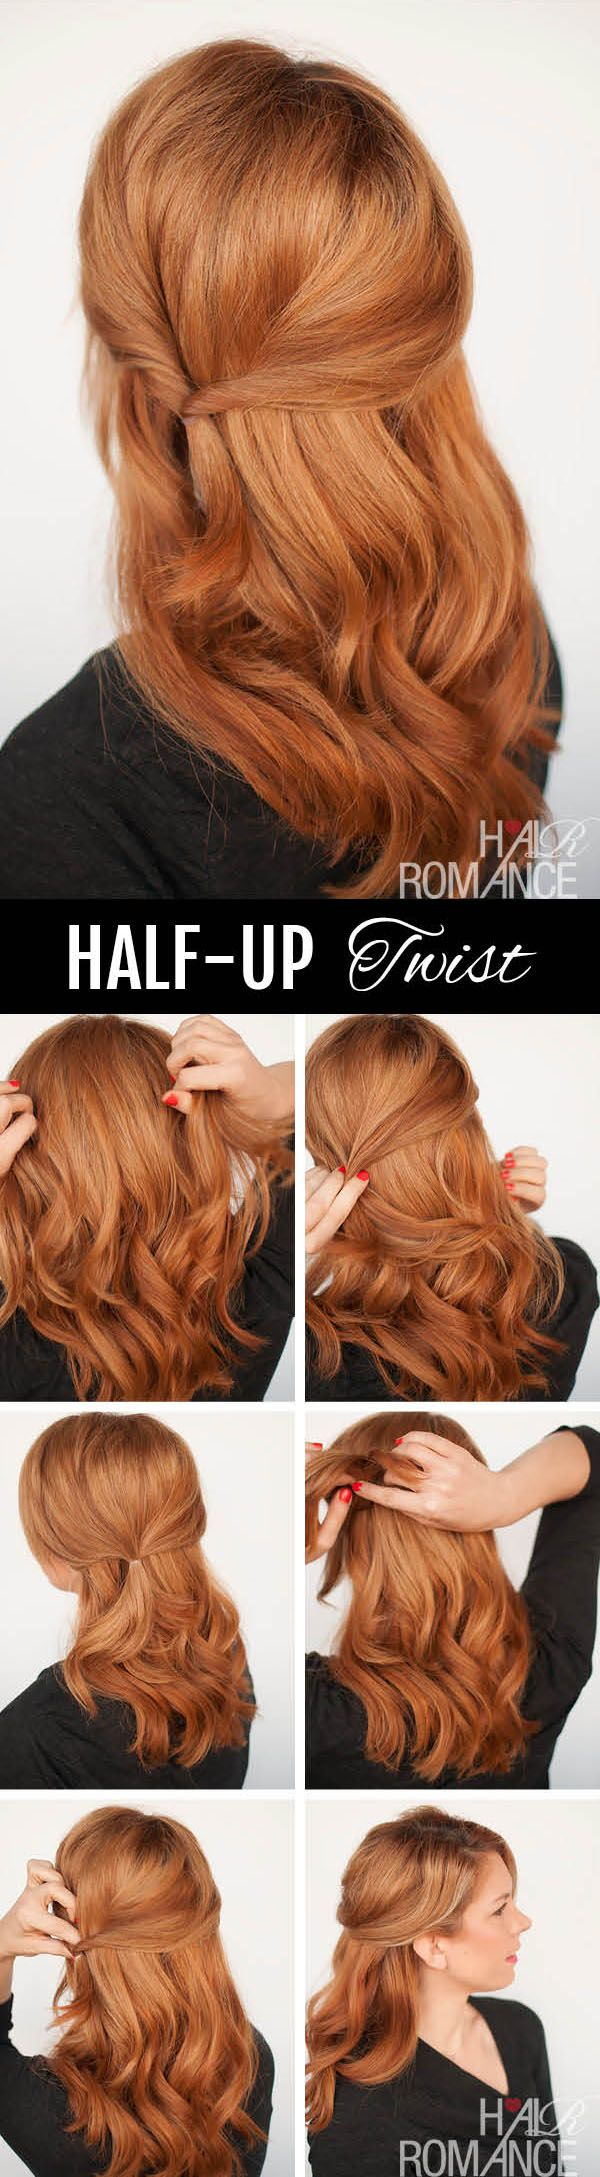 spectacular diy hairstyle ideas for a busy morning made for less